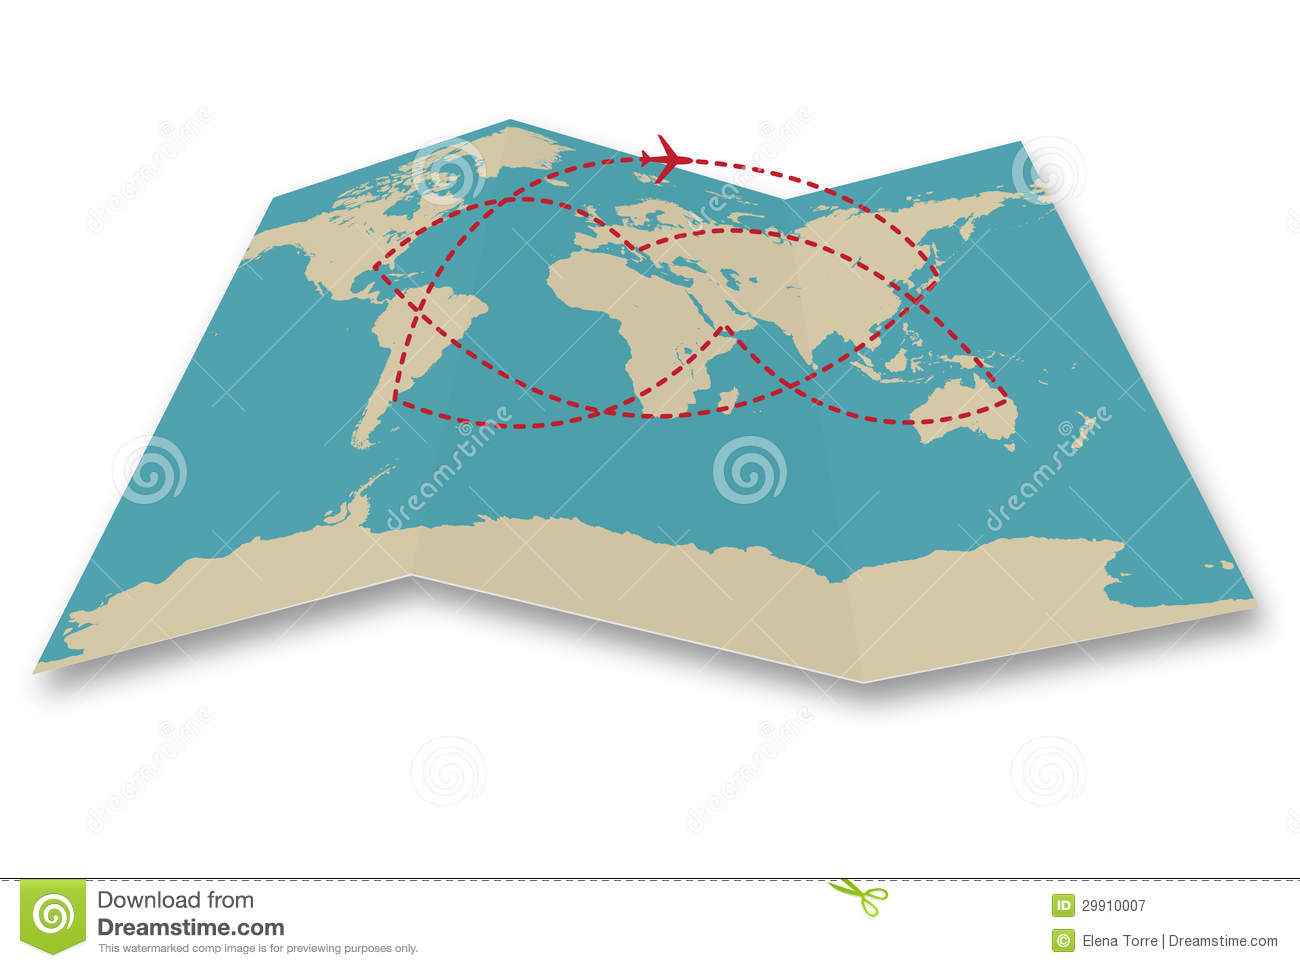 Travel World Map Stock Vector. Illustration Of Cartography